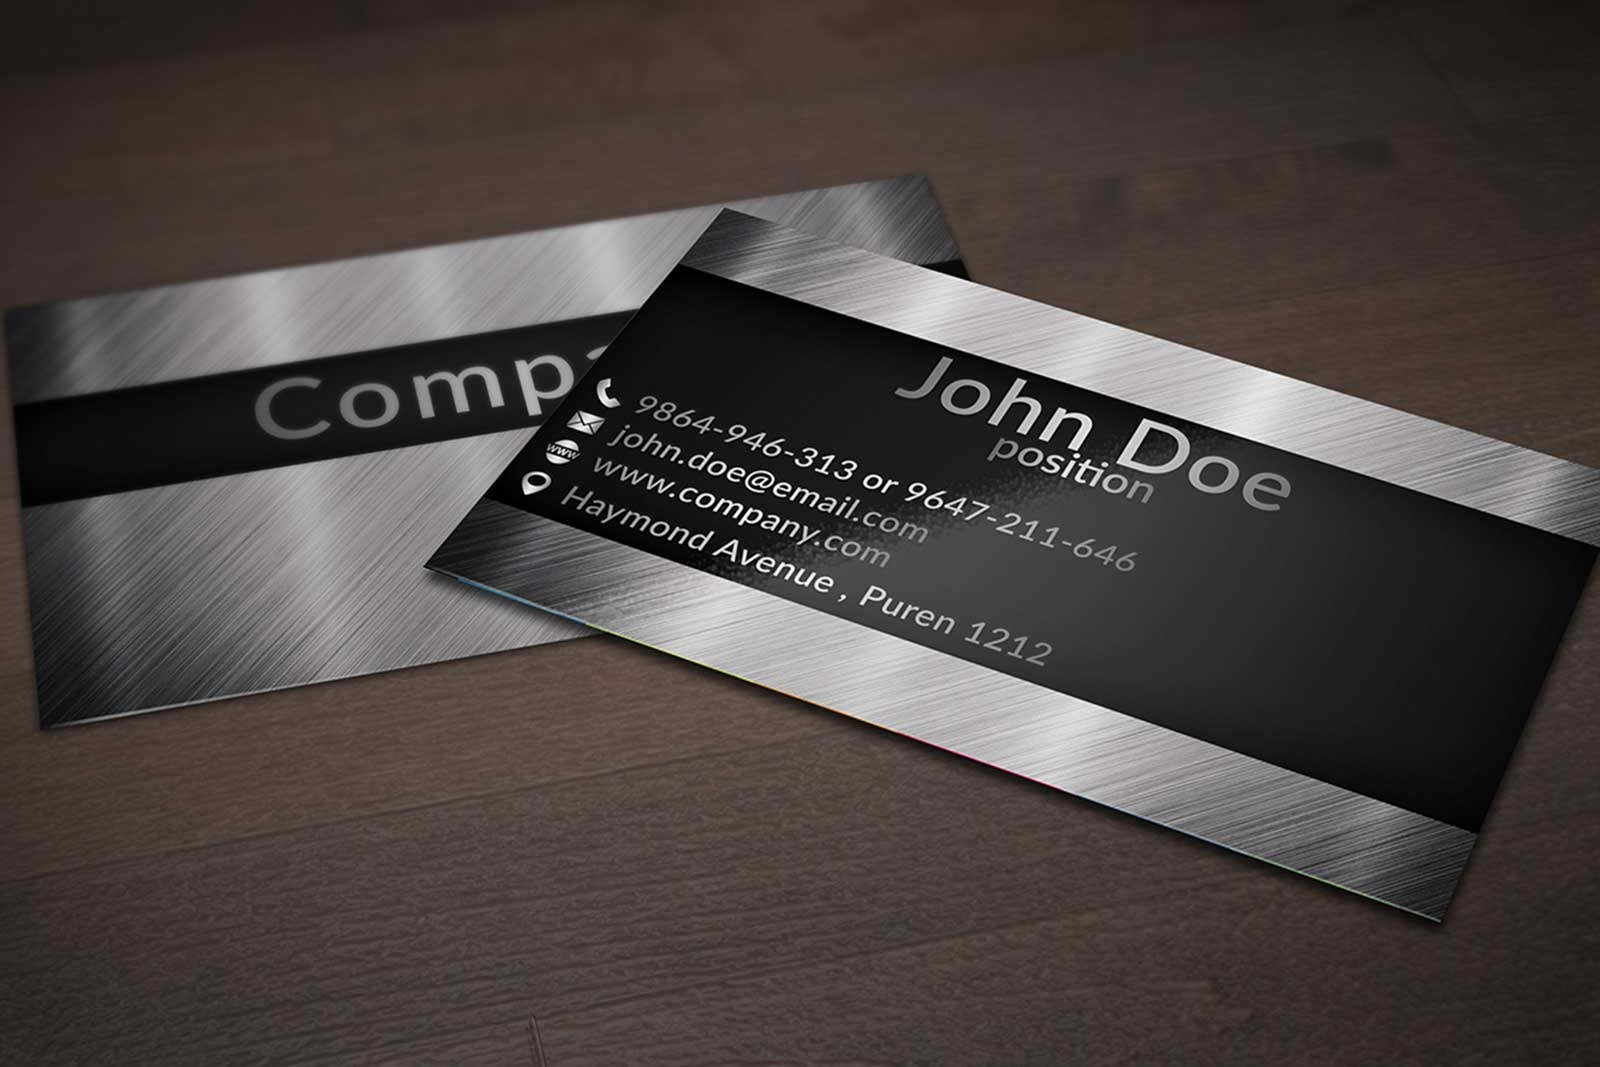 40 unique stylish psd corporate business card designs for free creative business card design on brushed background accmission Gallery